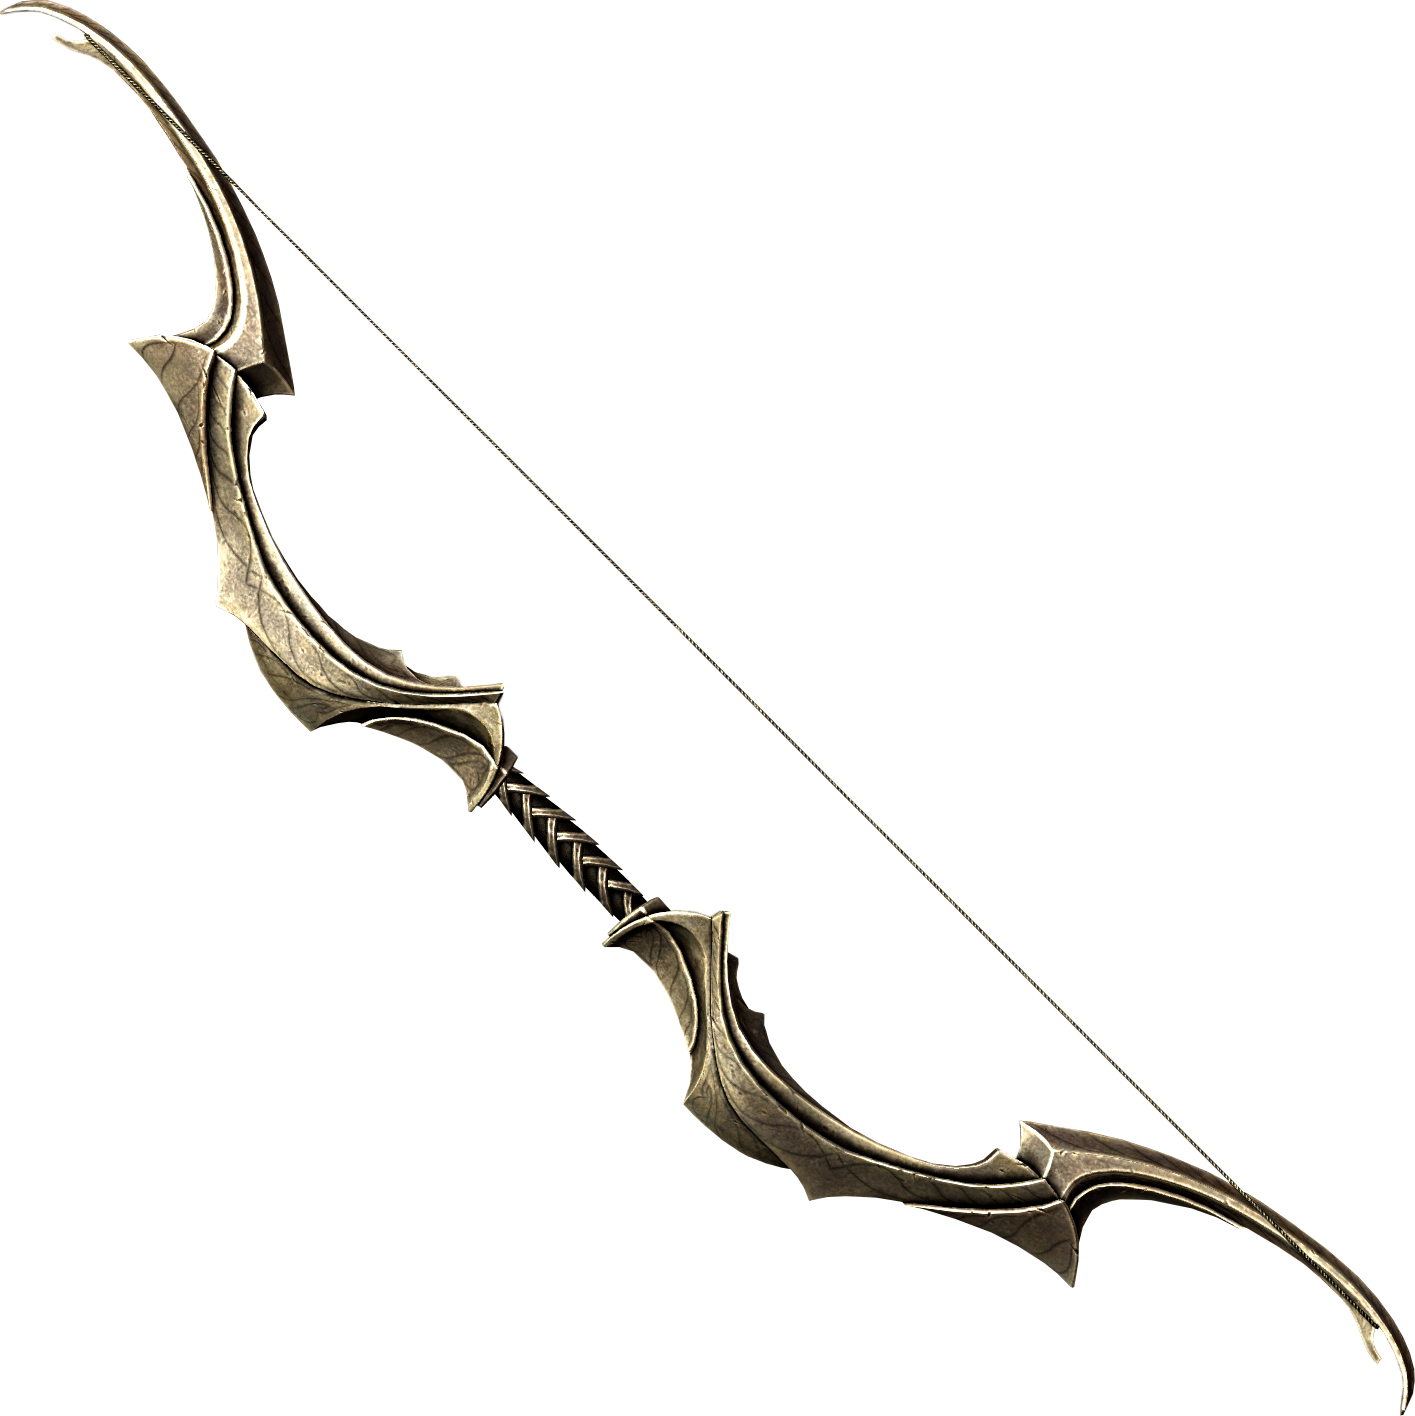 Drawing items bow. Bows skyrim elder scrolls